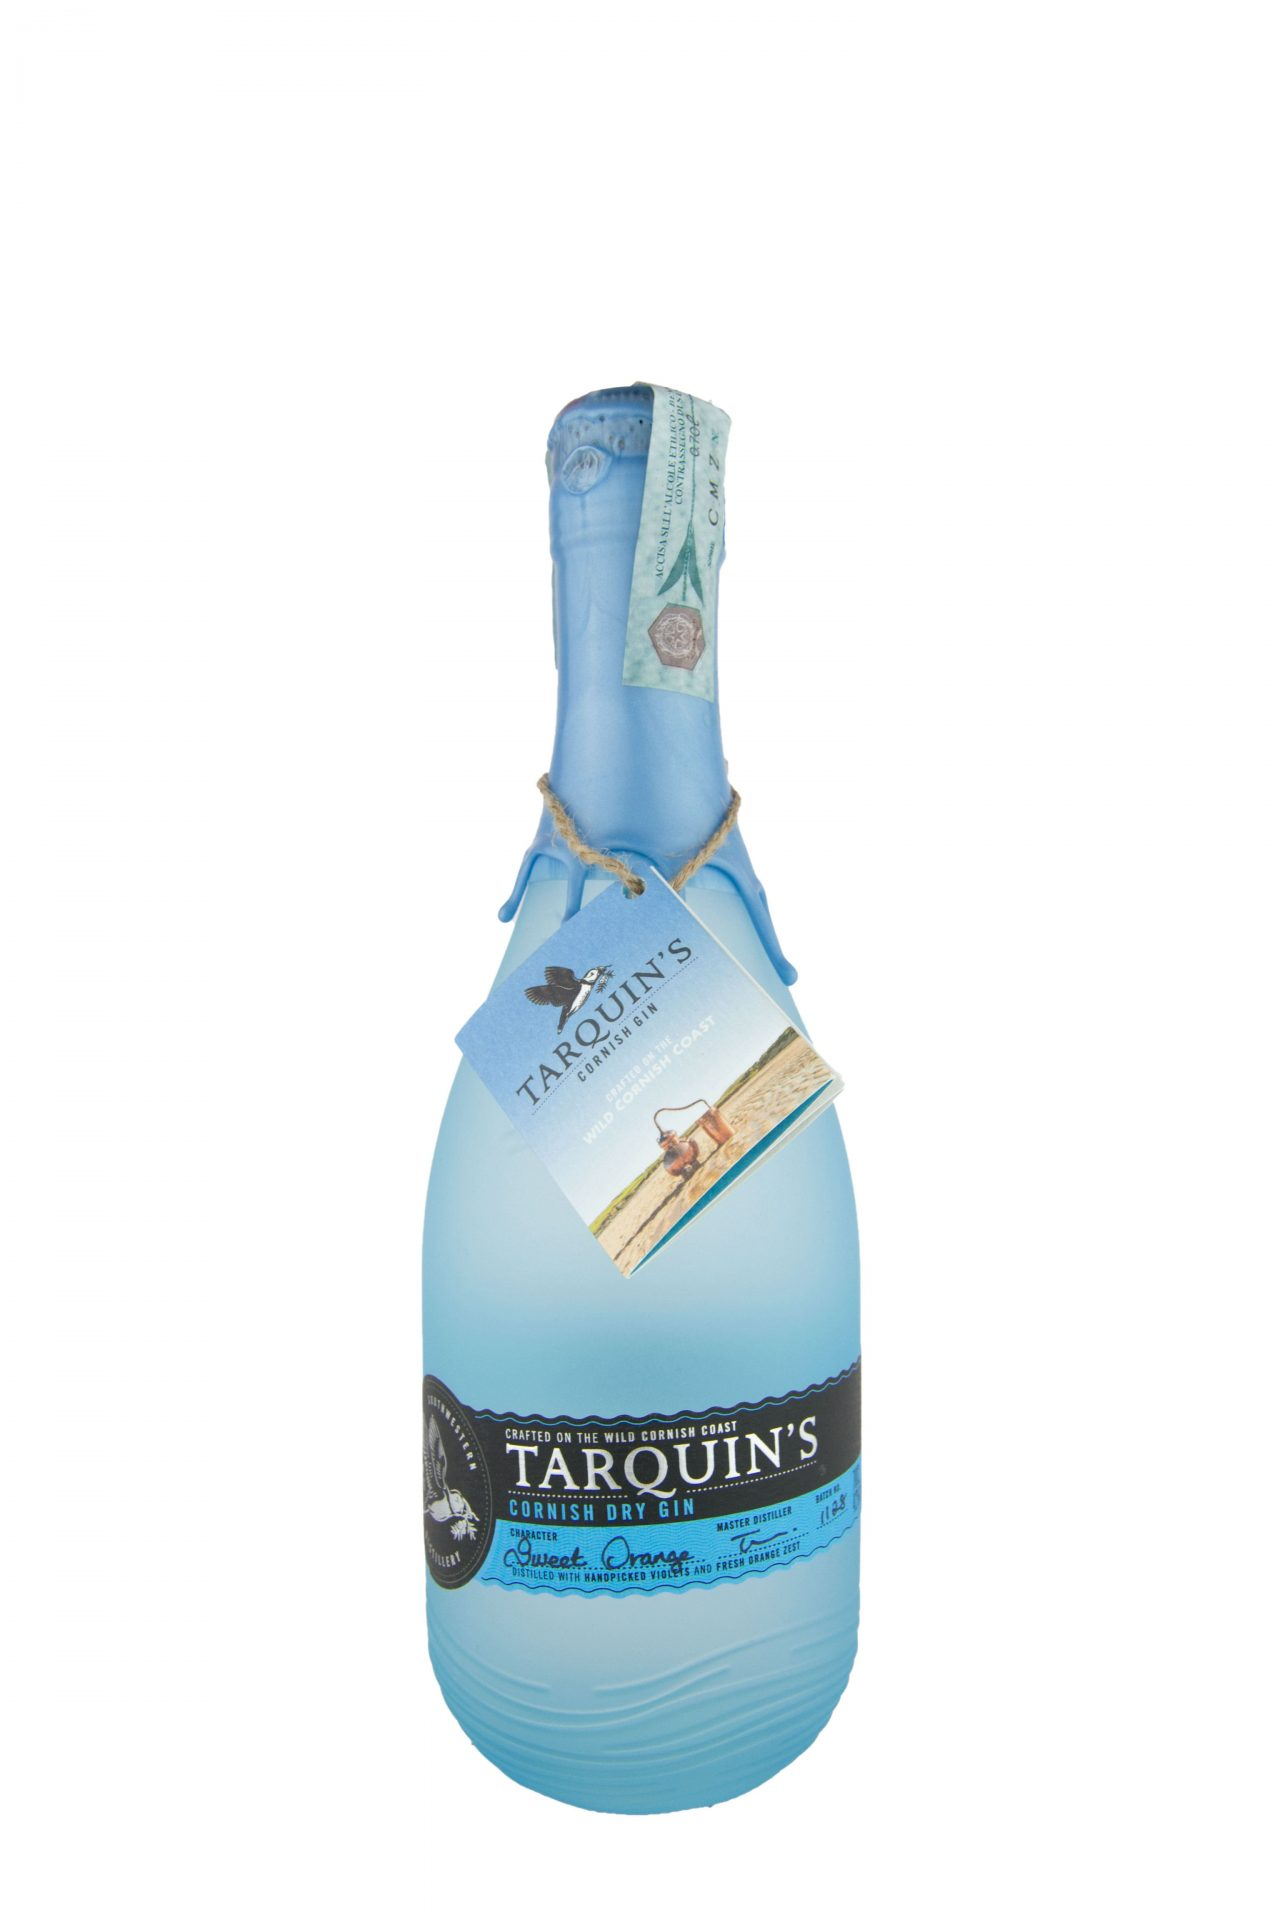 Tarquin's – Cornish Dry Gin